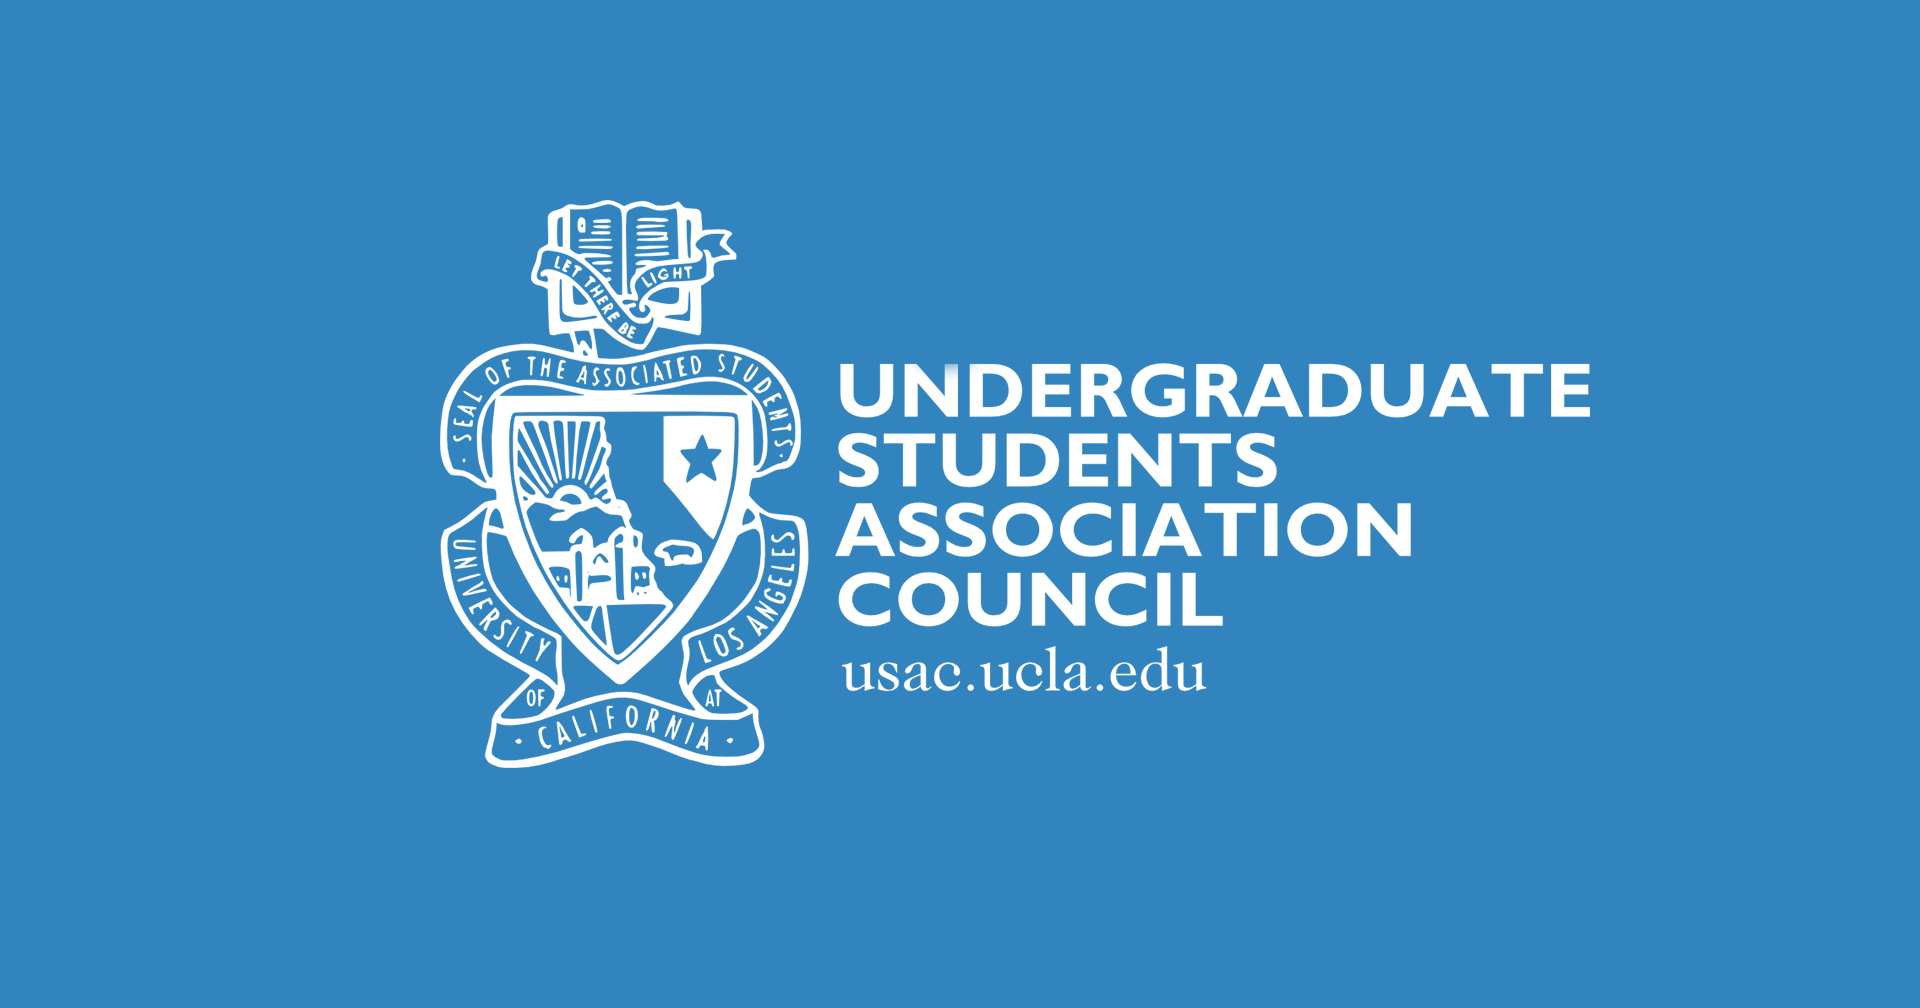 Undergraduate Student Association Council logo